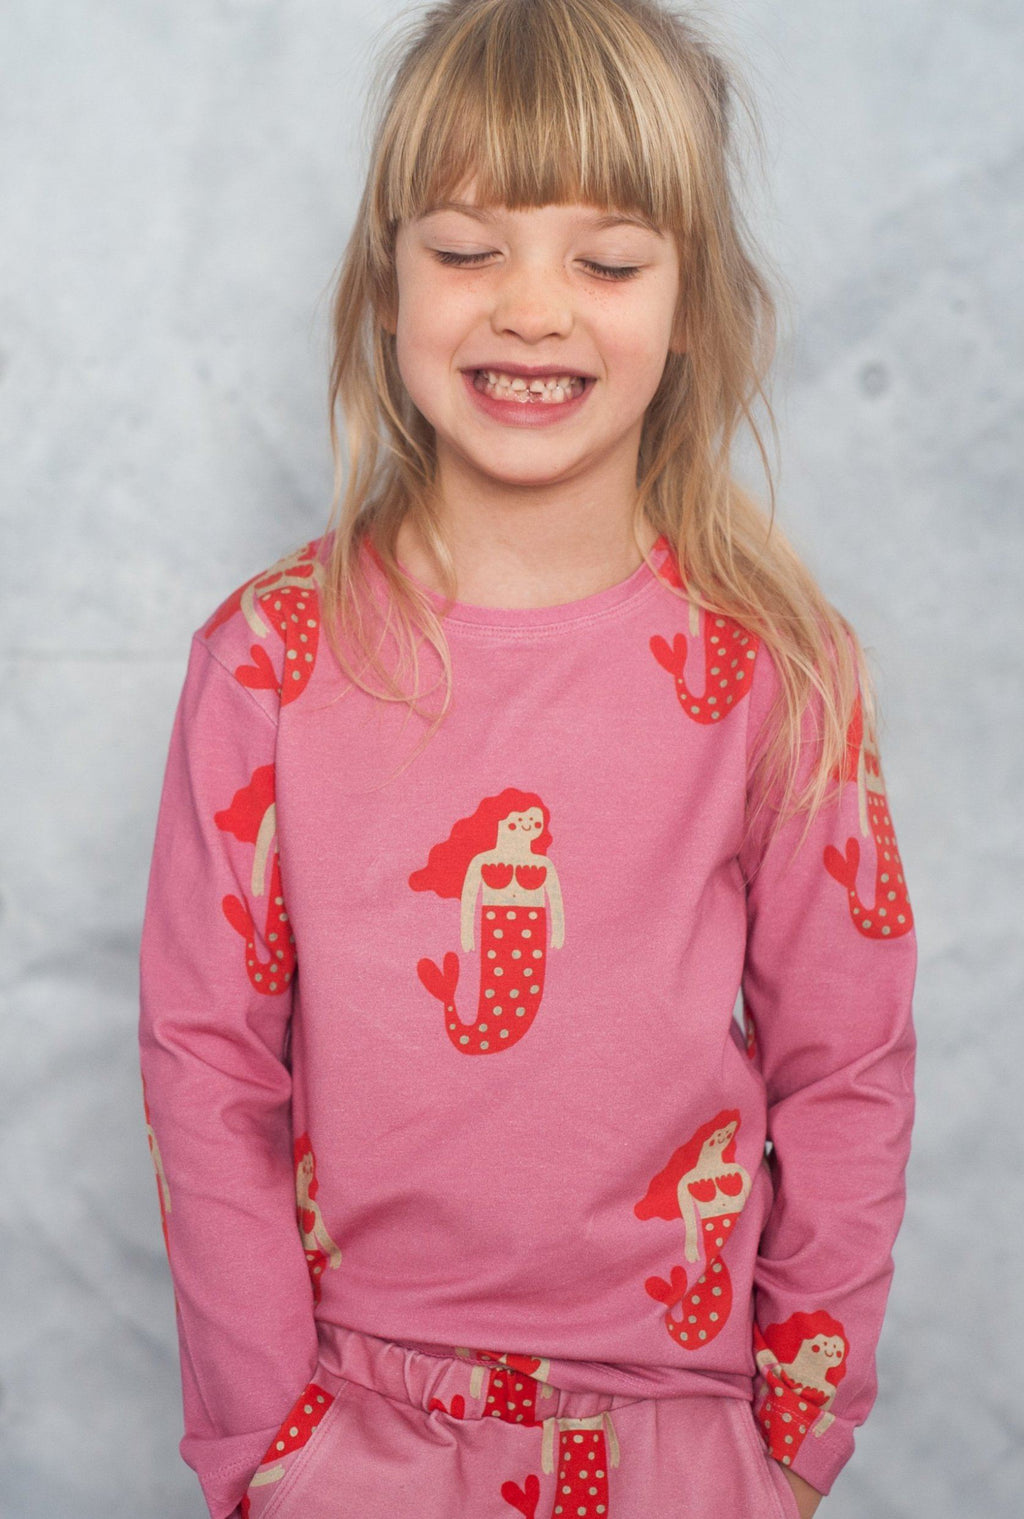 Long sleeve mermaid don't grow up Tops don't grow up